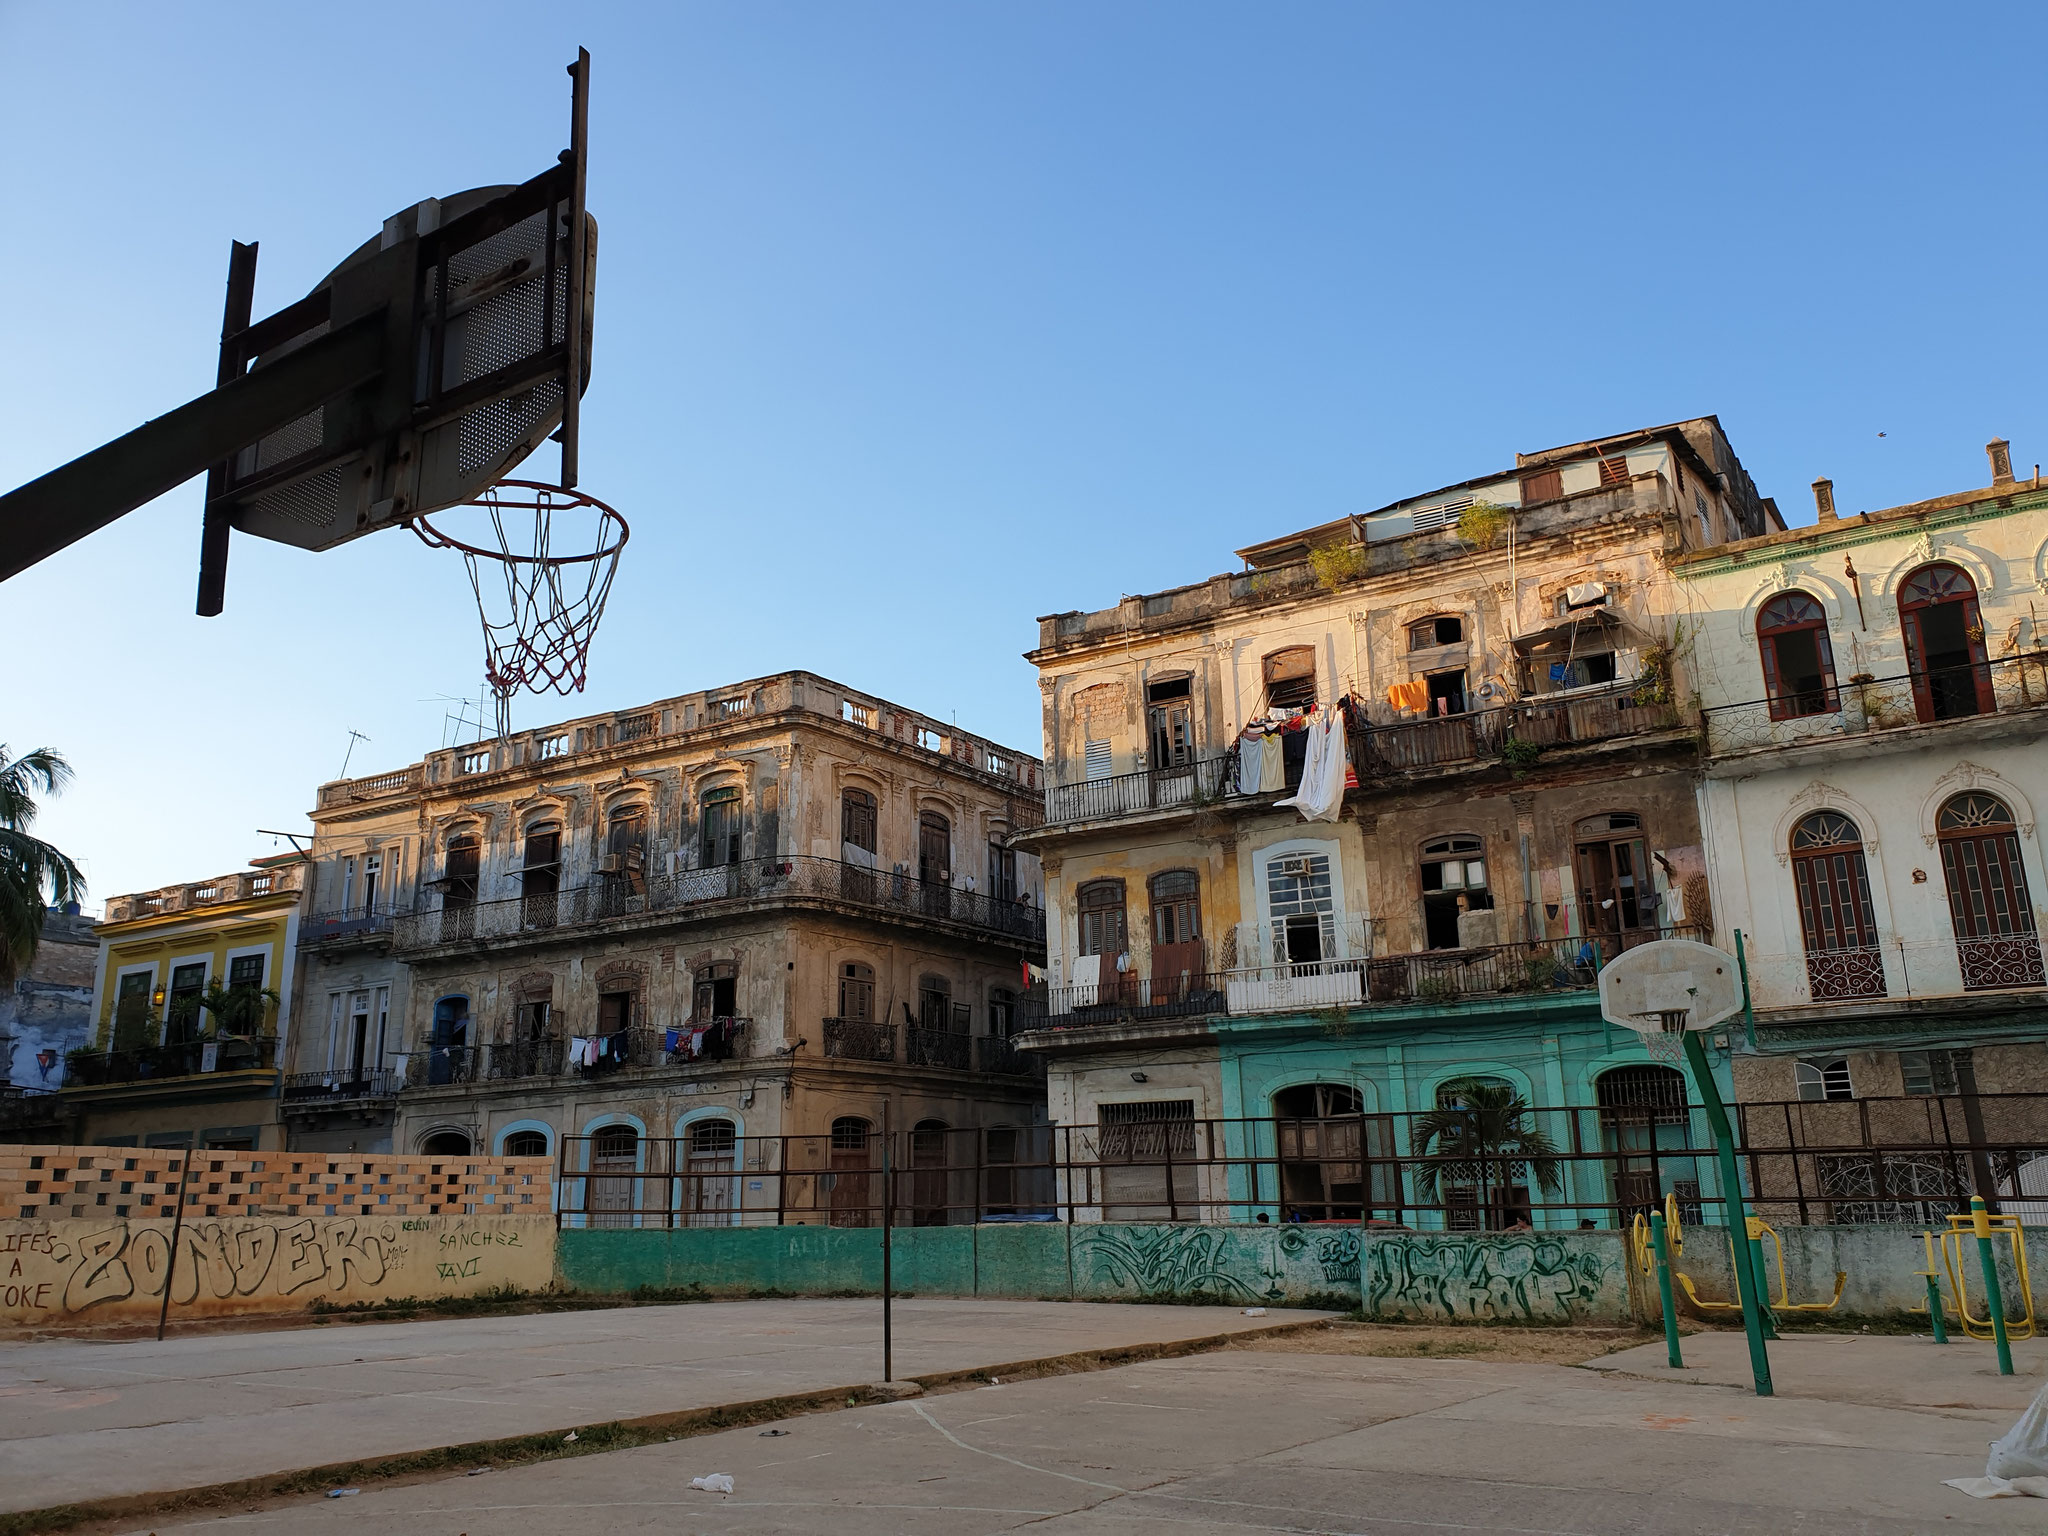 Basketballplatz in Havanna